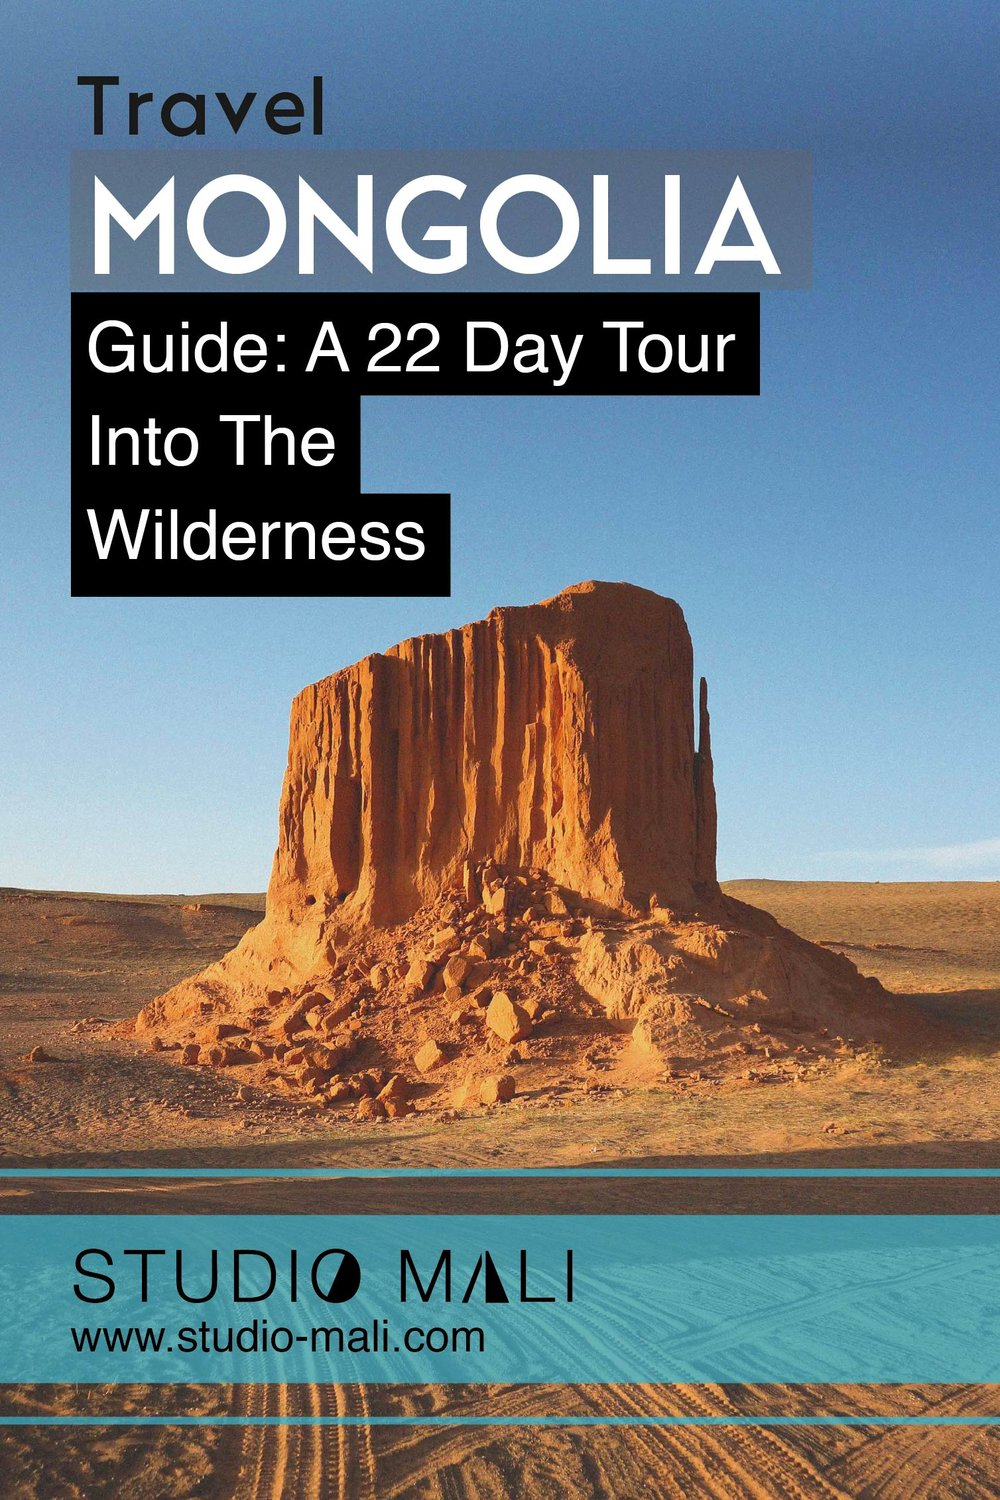 Mongolia Guide: A 22 Day Tour Into The Wilderness, by Studio Mali